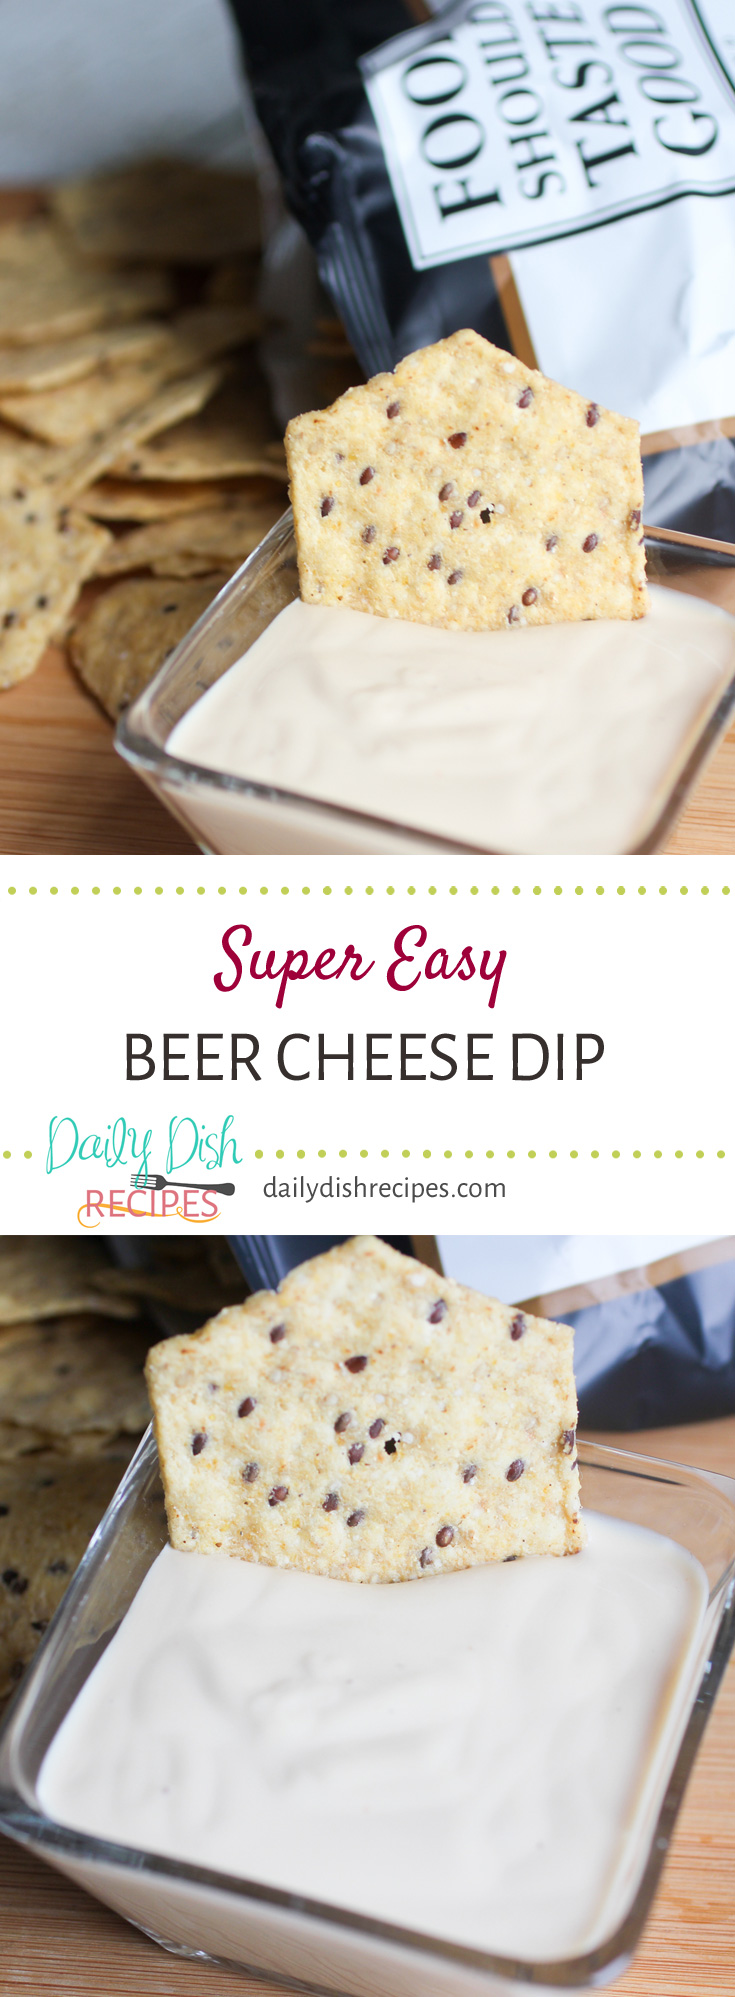 Want an easy dip for just about any party? This Super Easy Beer Cheese Dip goes GREAT on gameday or any other fun gathering with all your favorite people! This one only has three ingredients and is so delicious!